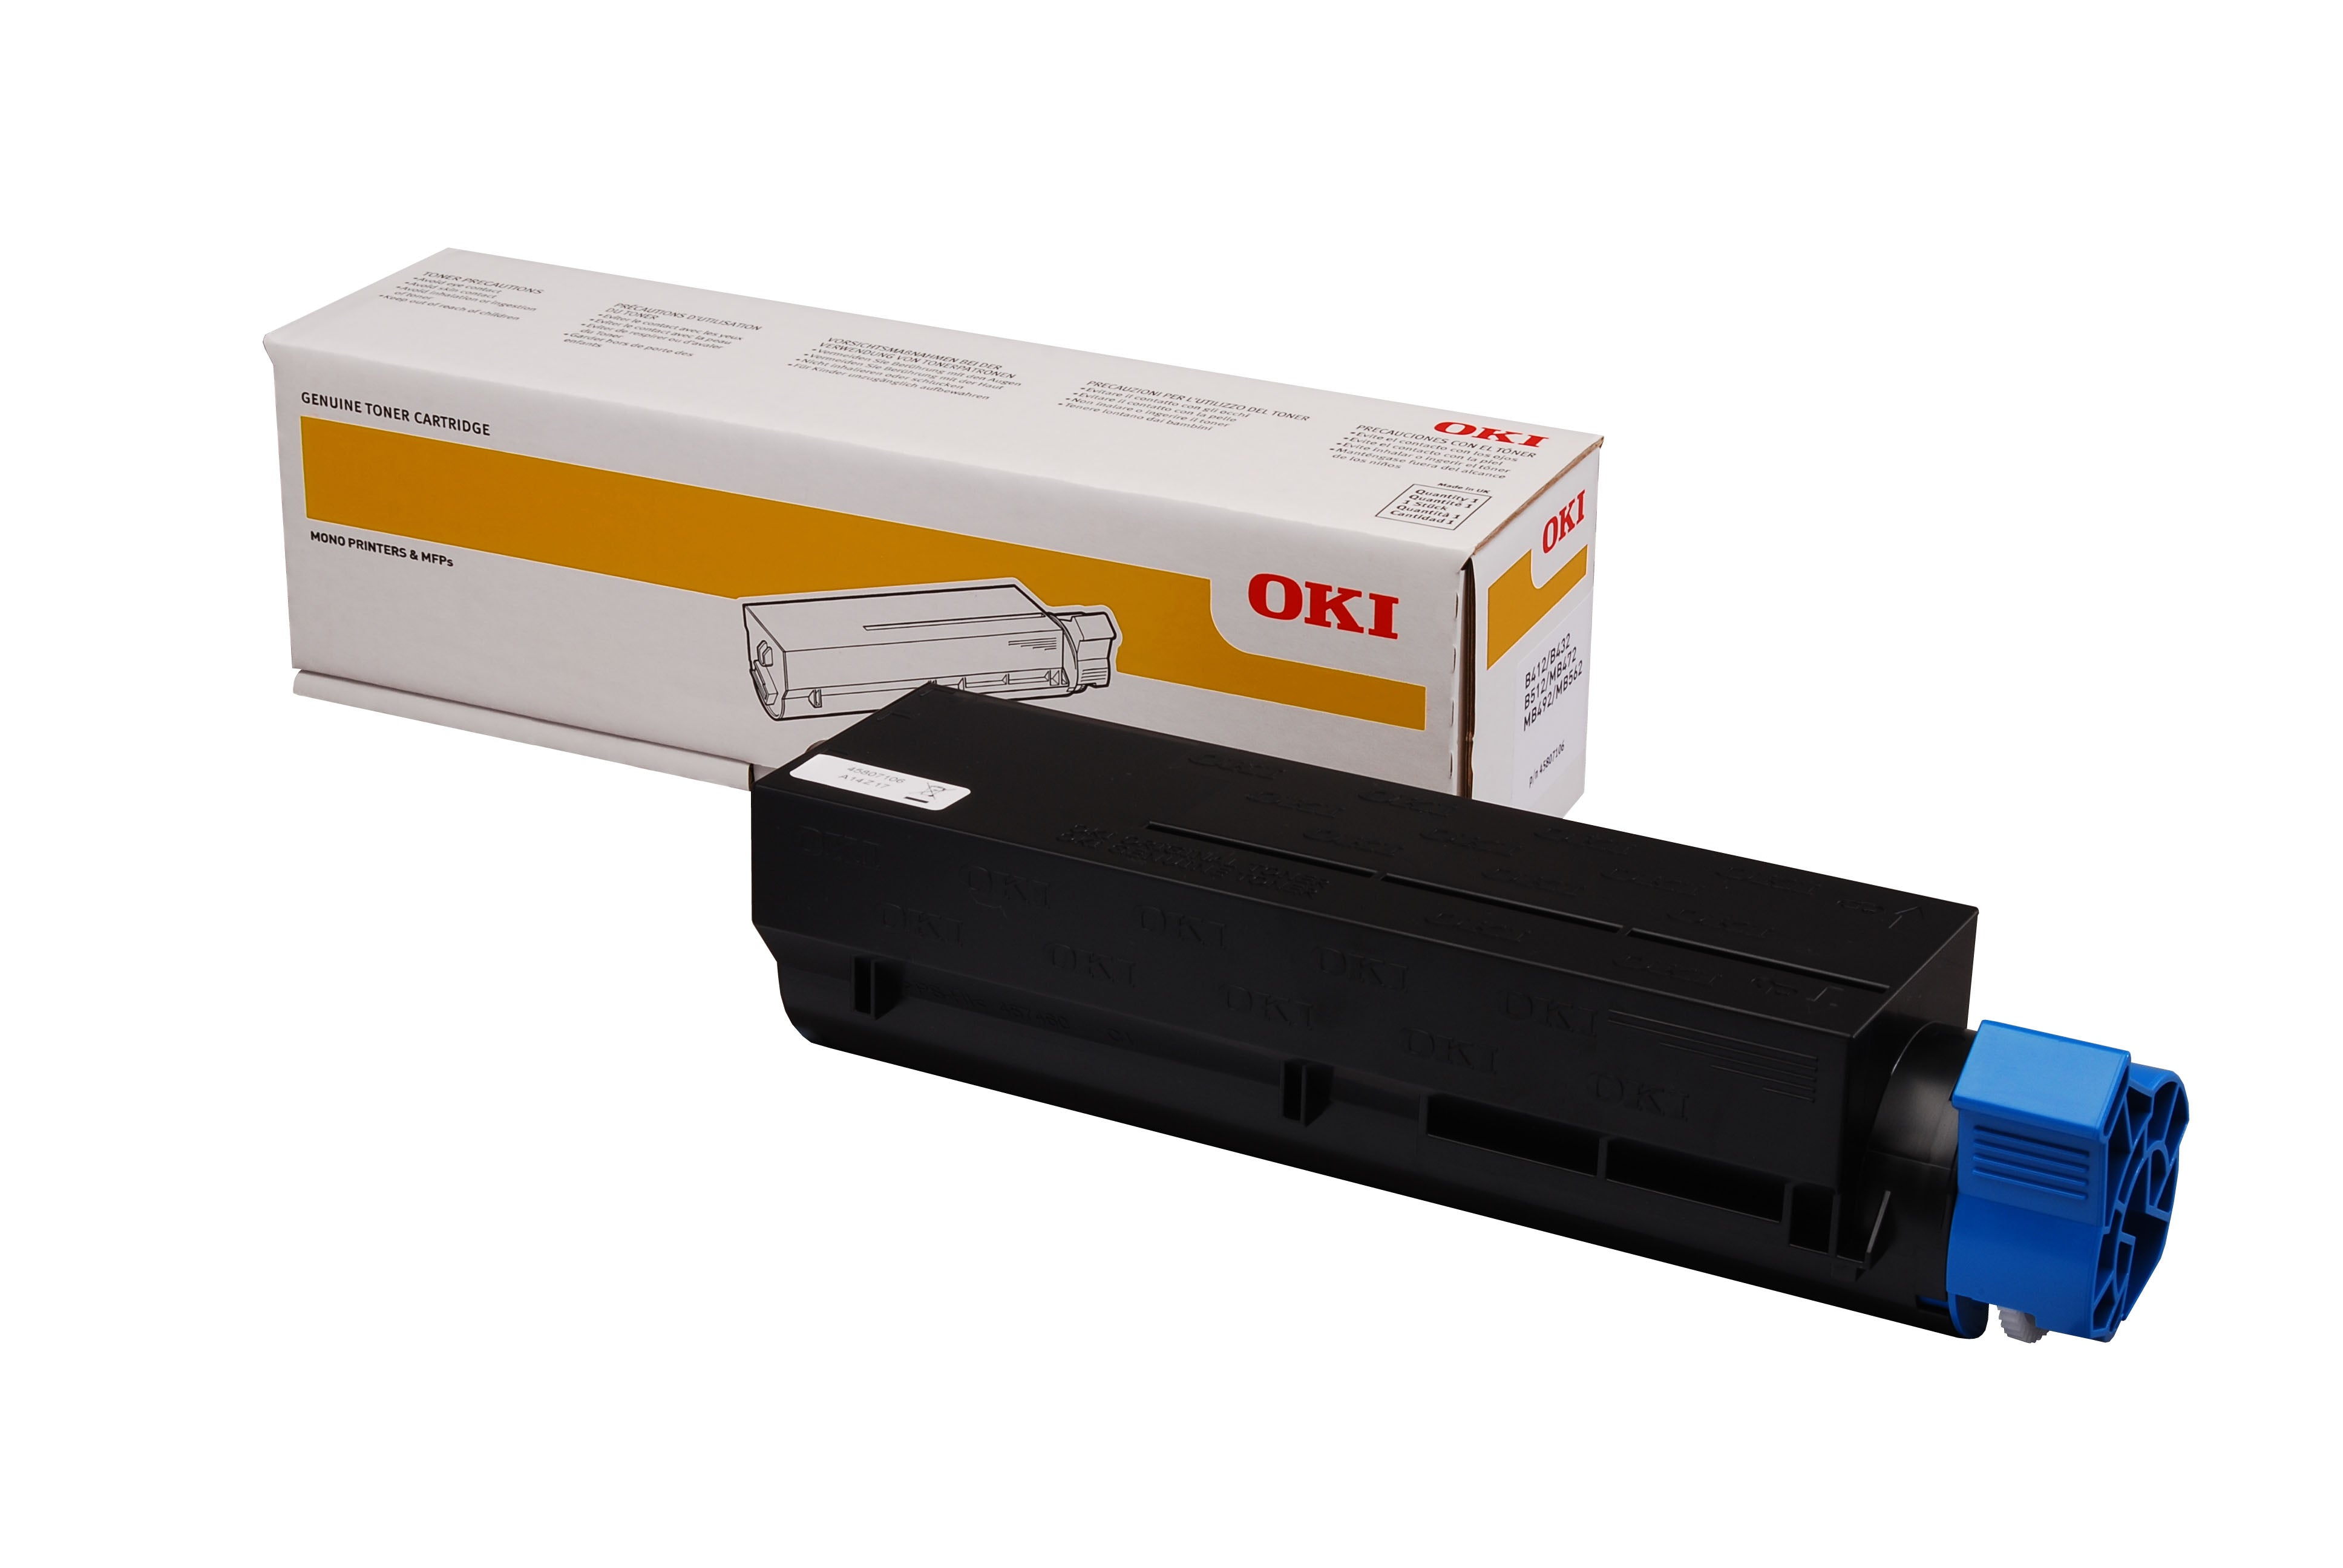 OKI B432dn Black Toner (12,000 Pages) 45807112